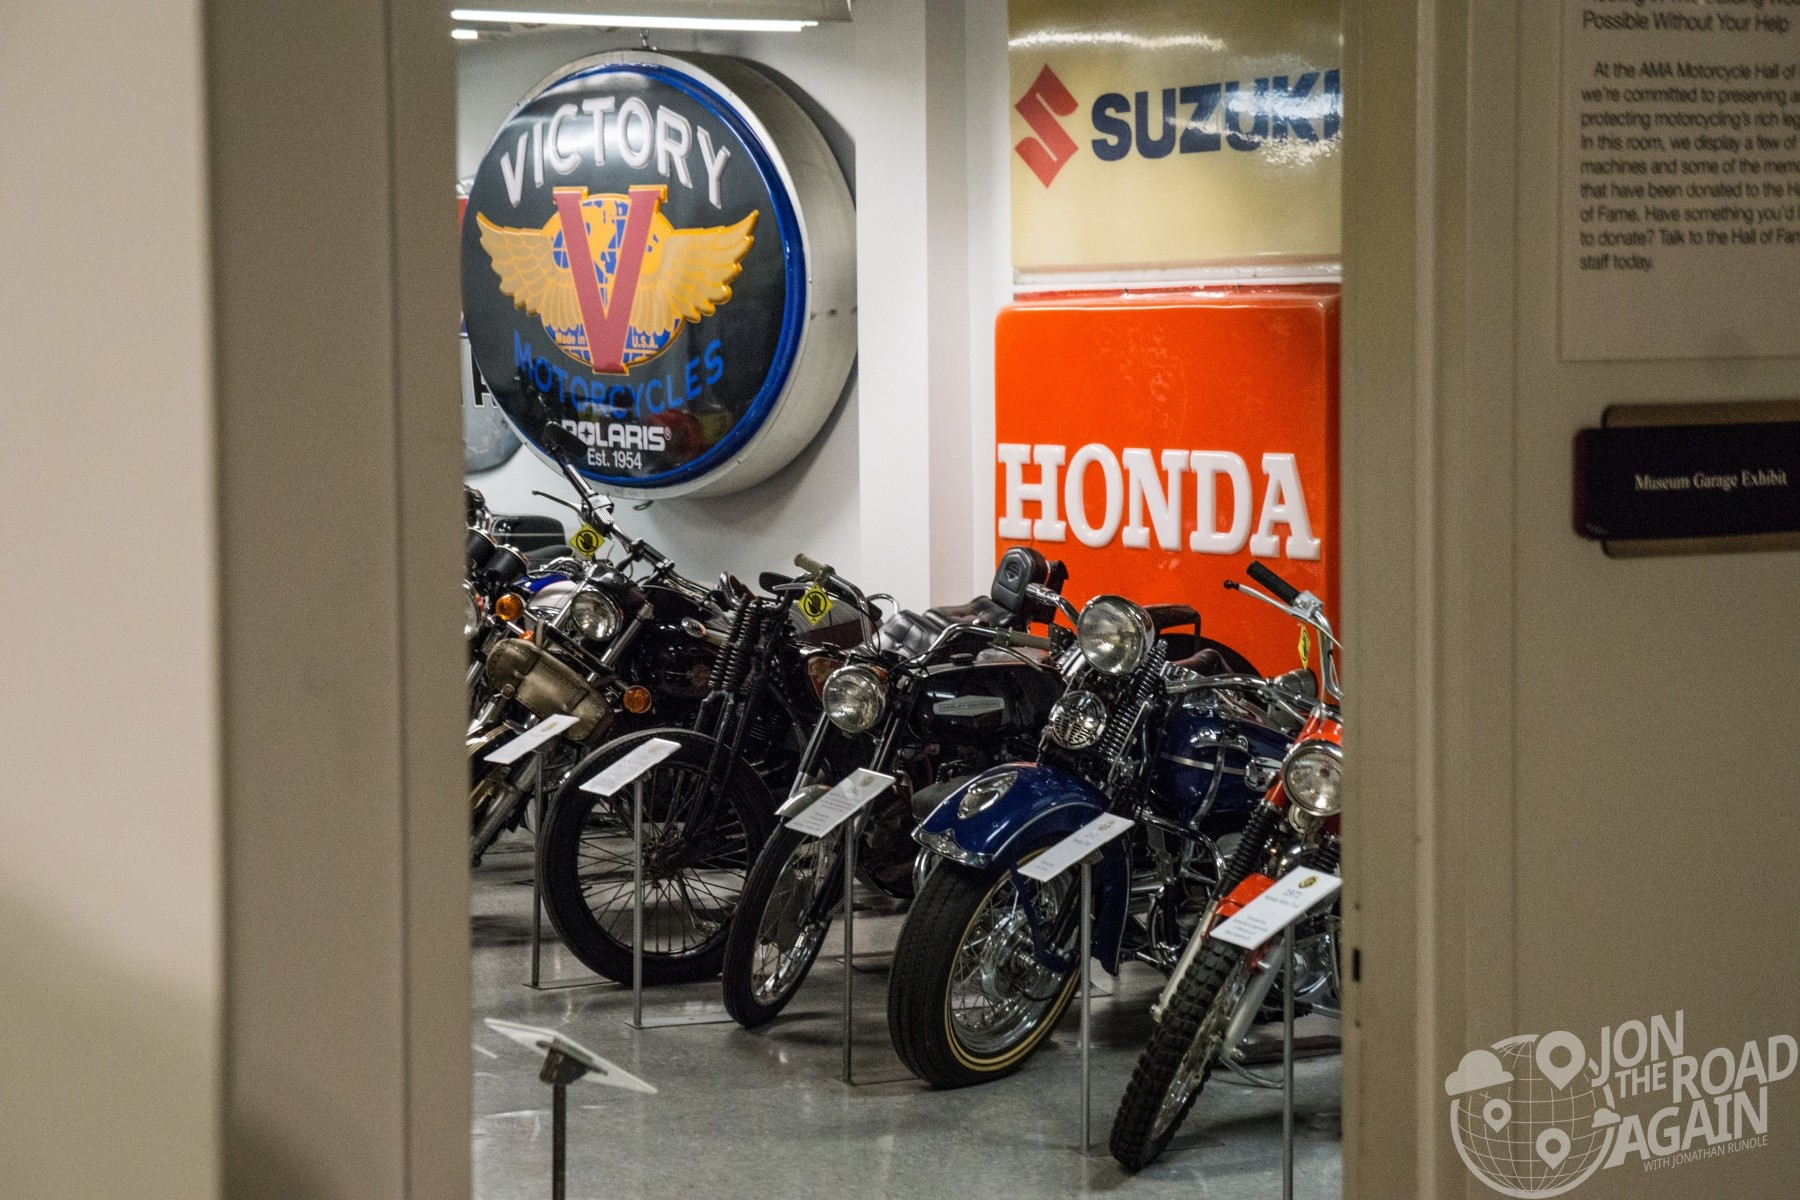 Garage display at Motorcycle Hall of Fame